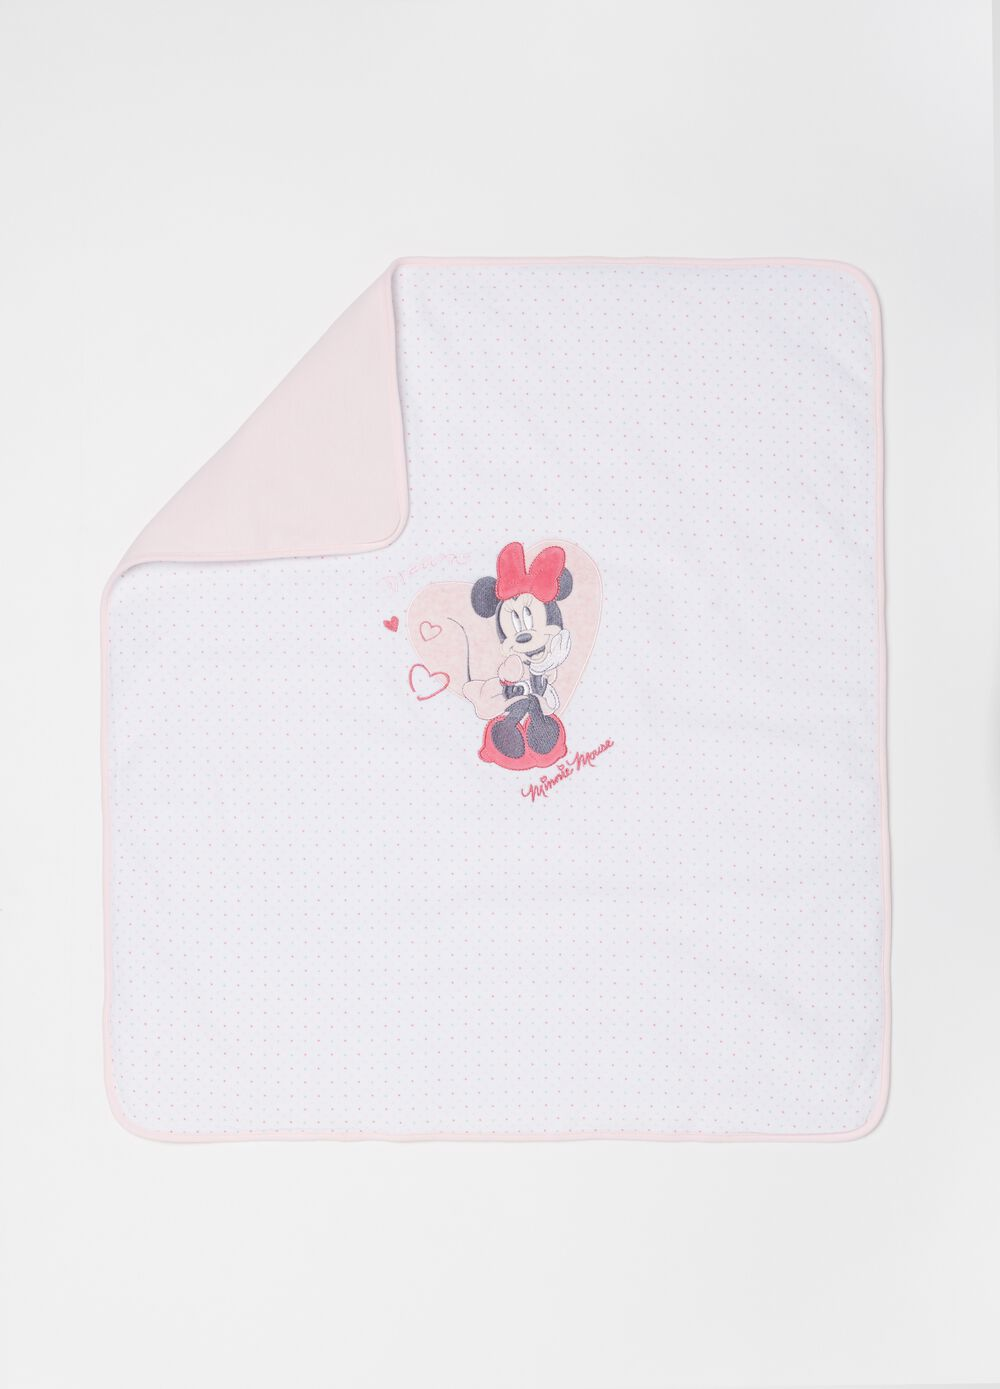 Blanket with Disney Minnie Mouse embroidery and polka dots